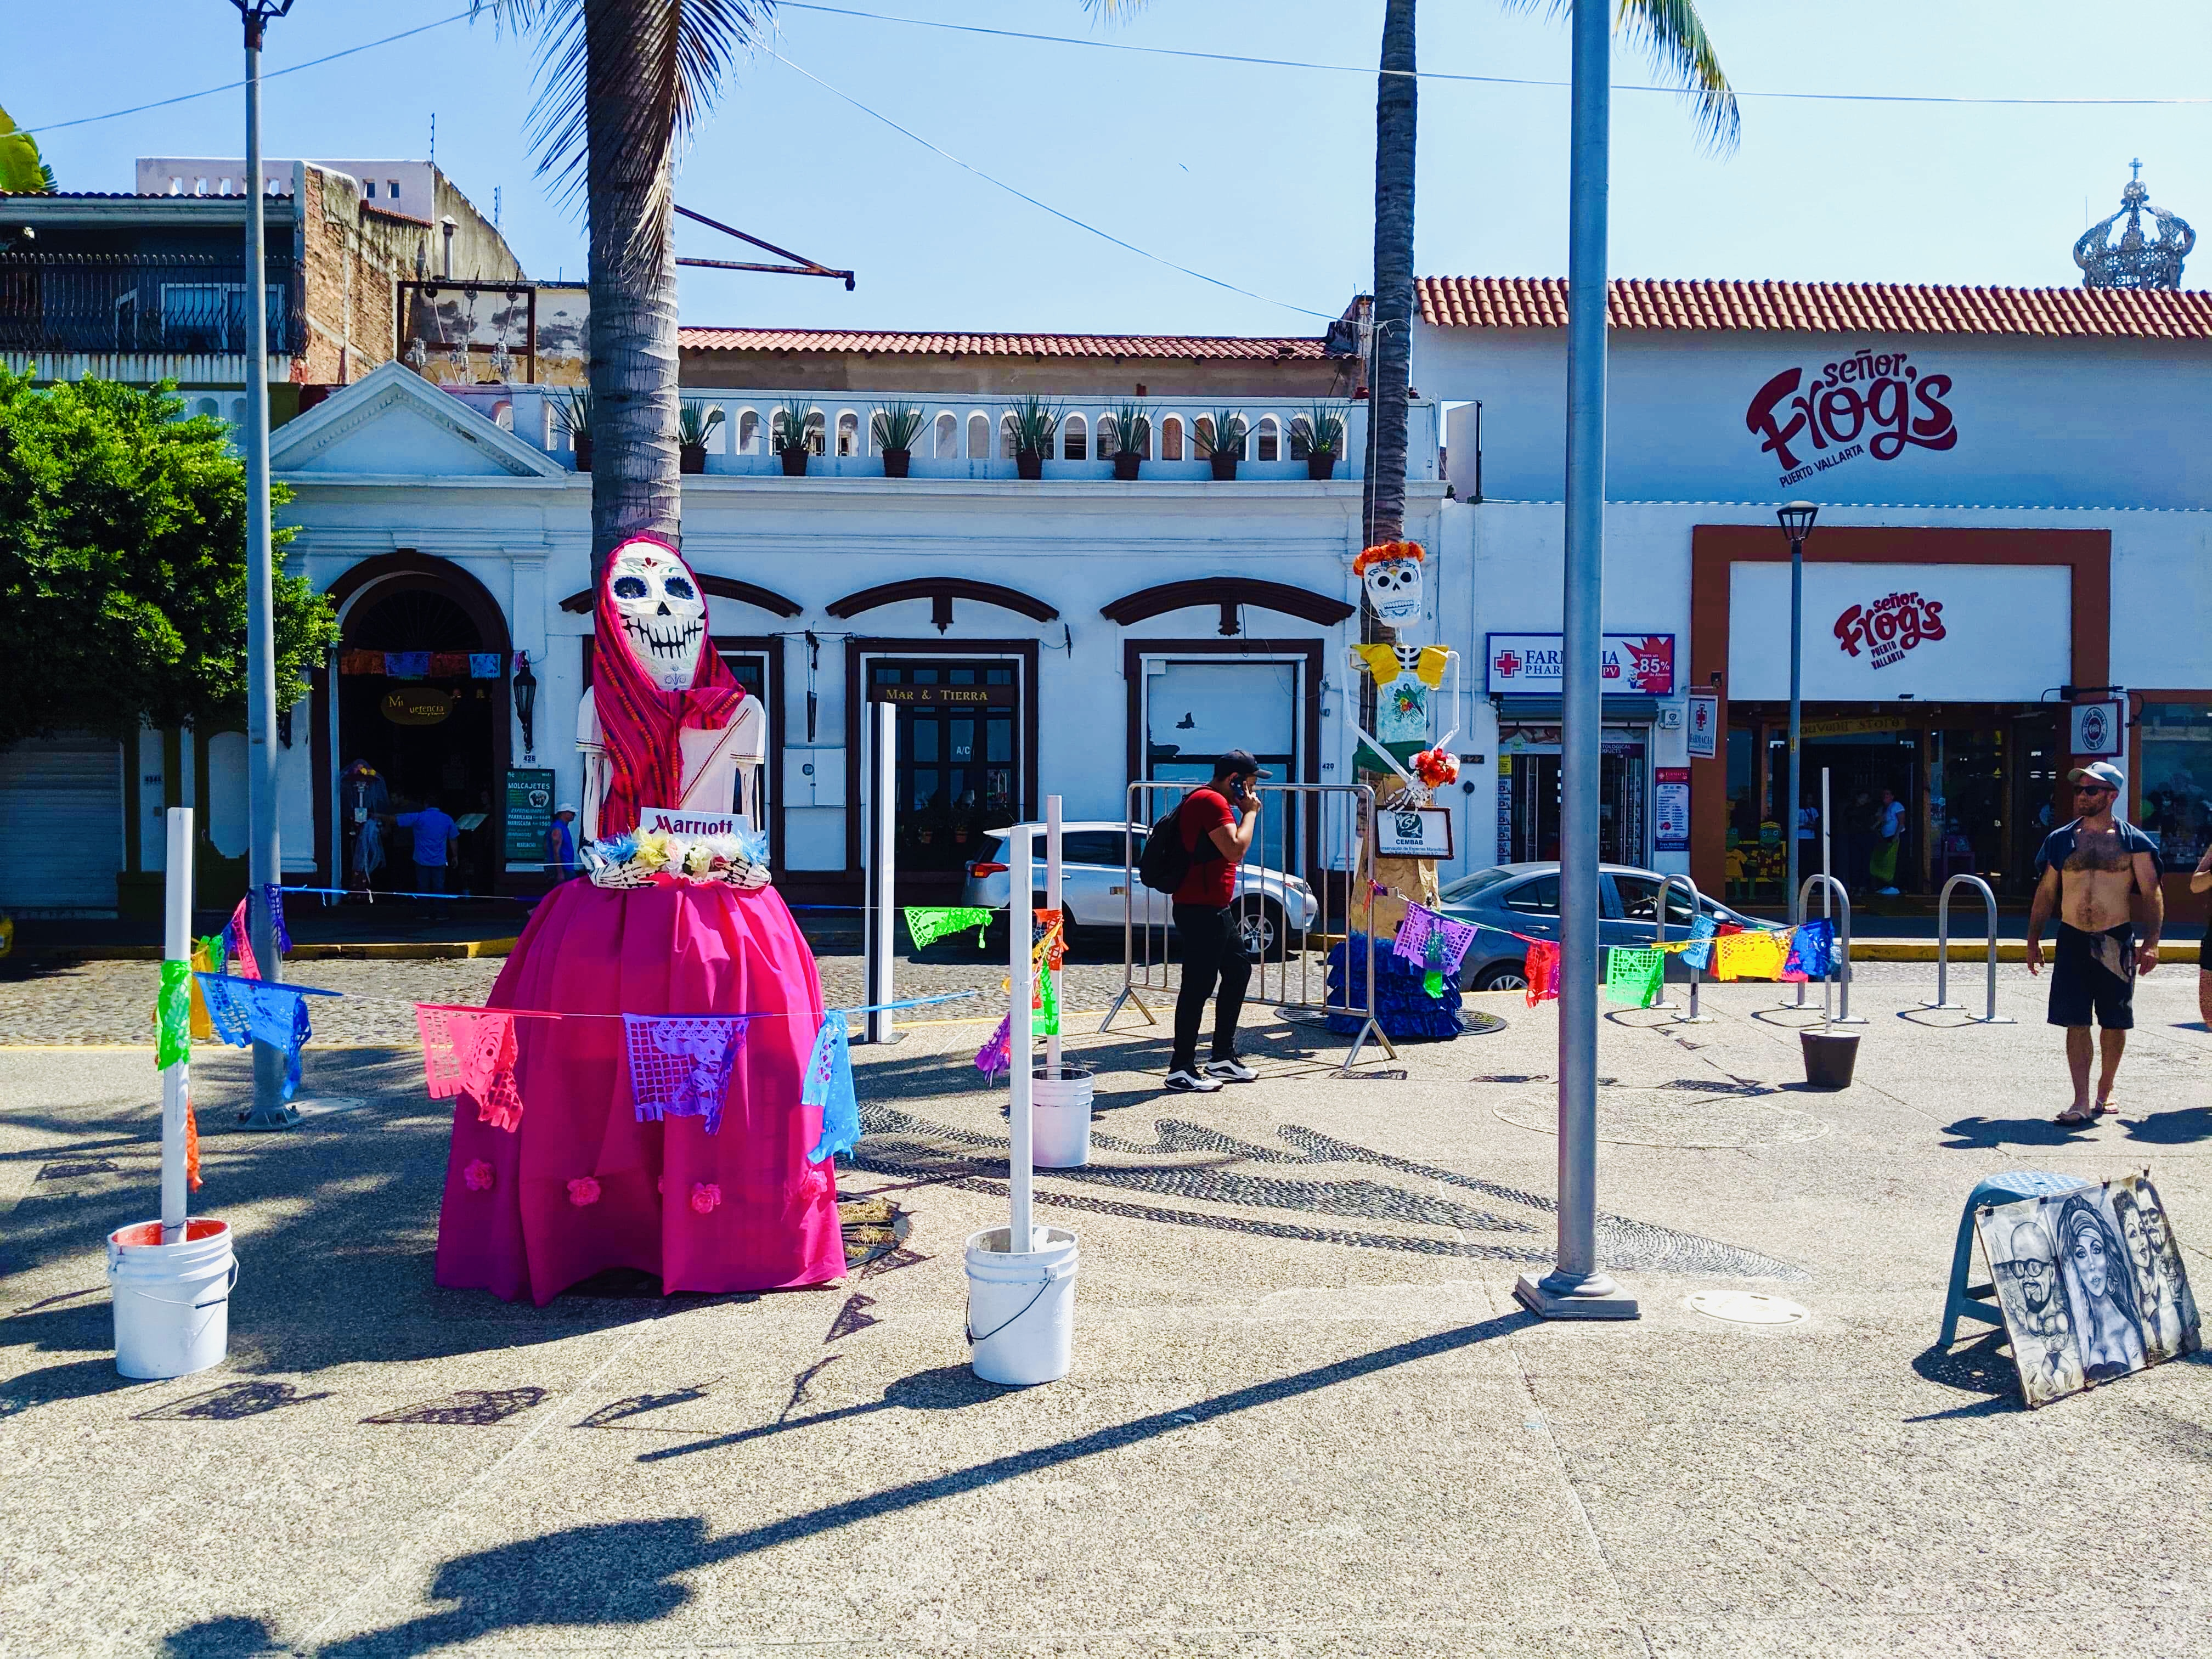 Marriott Day of the Dead skeleton dressed up on Malecon, with shopfronts in background